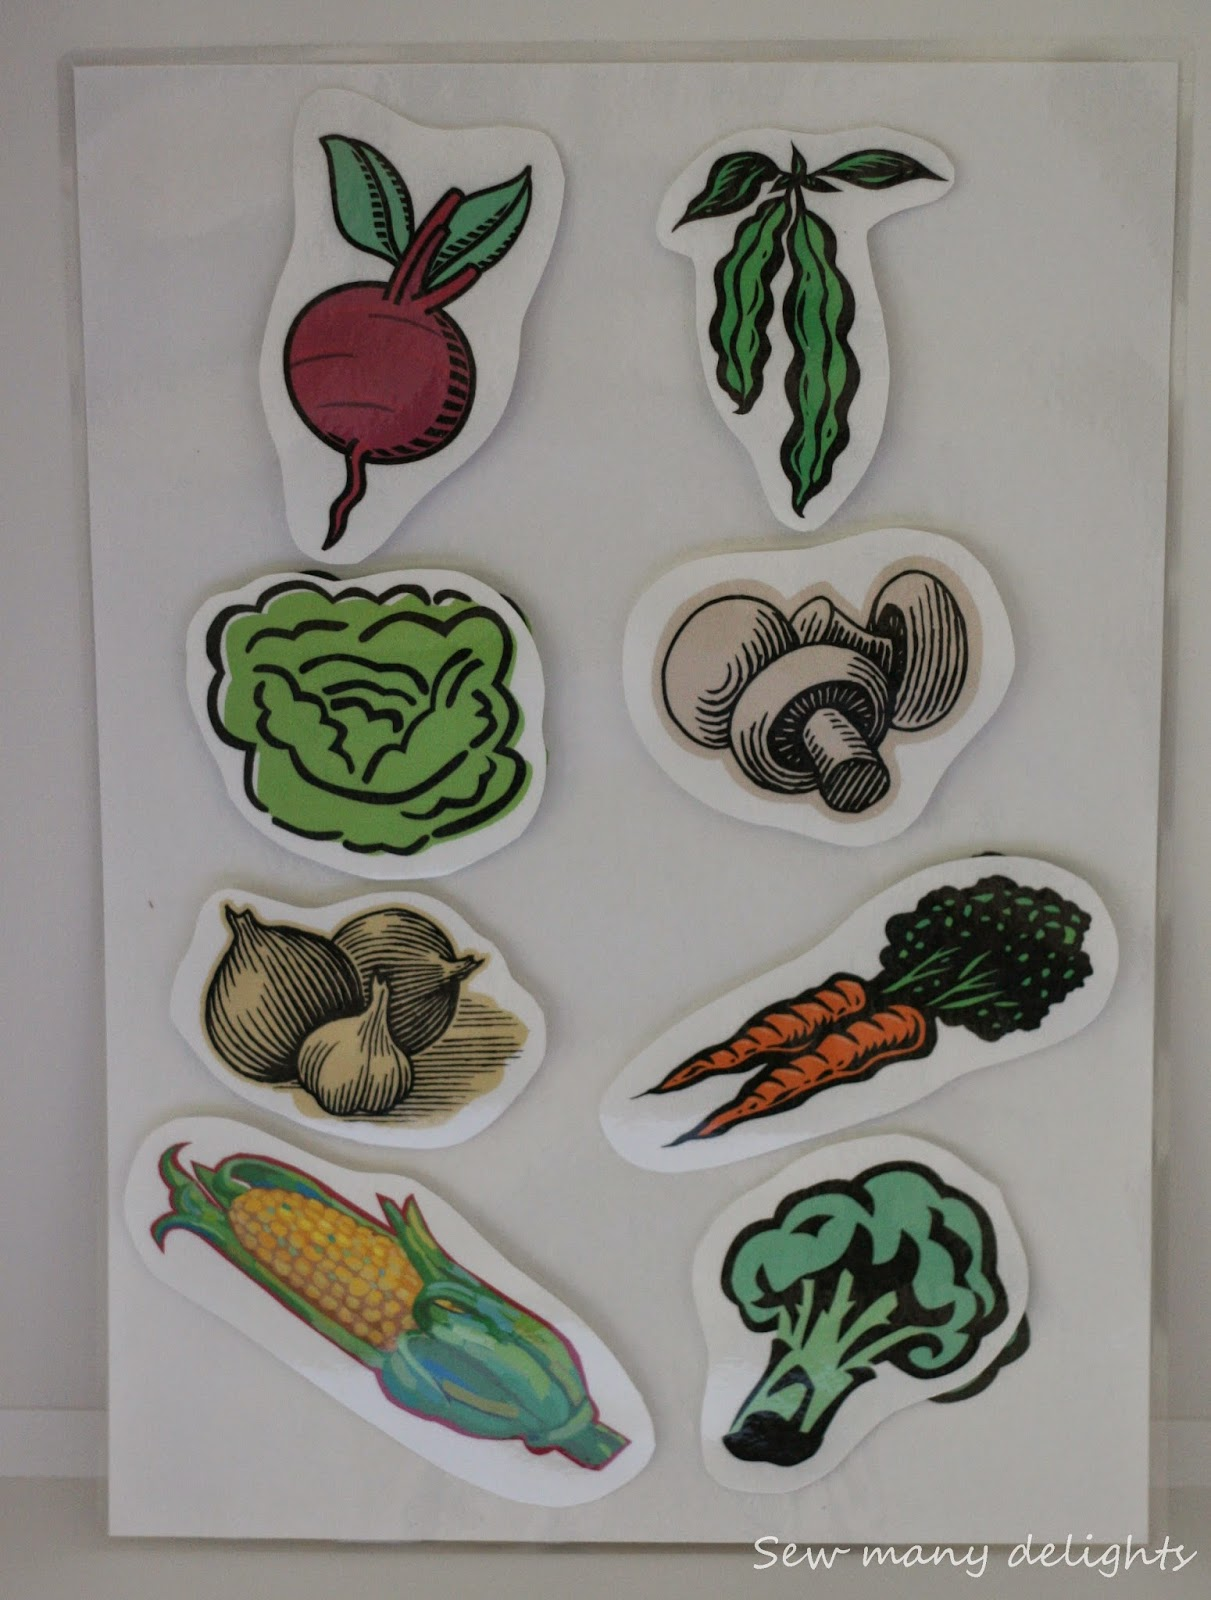 Match The Fruit And Vegetables To Their Corresponding Picture Print Two Copies Of Each Page Laminate Cut Around Pictures On One Copy